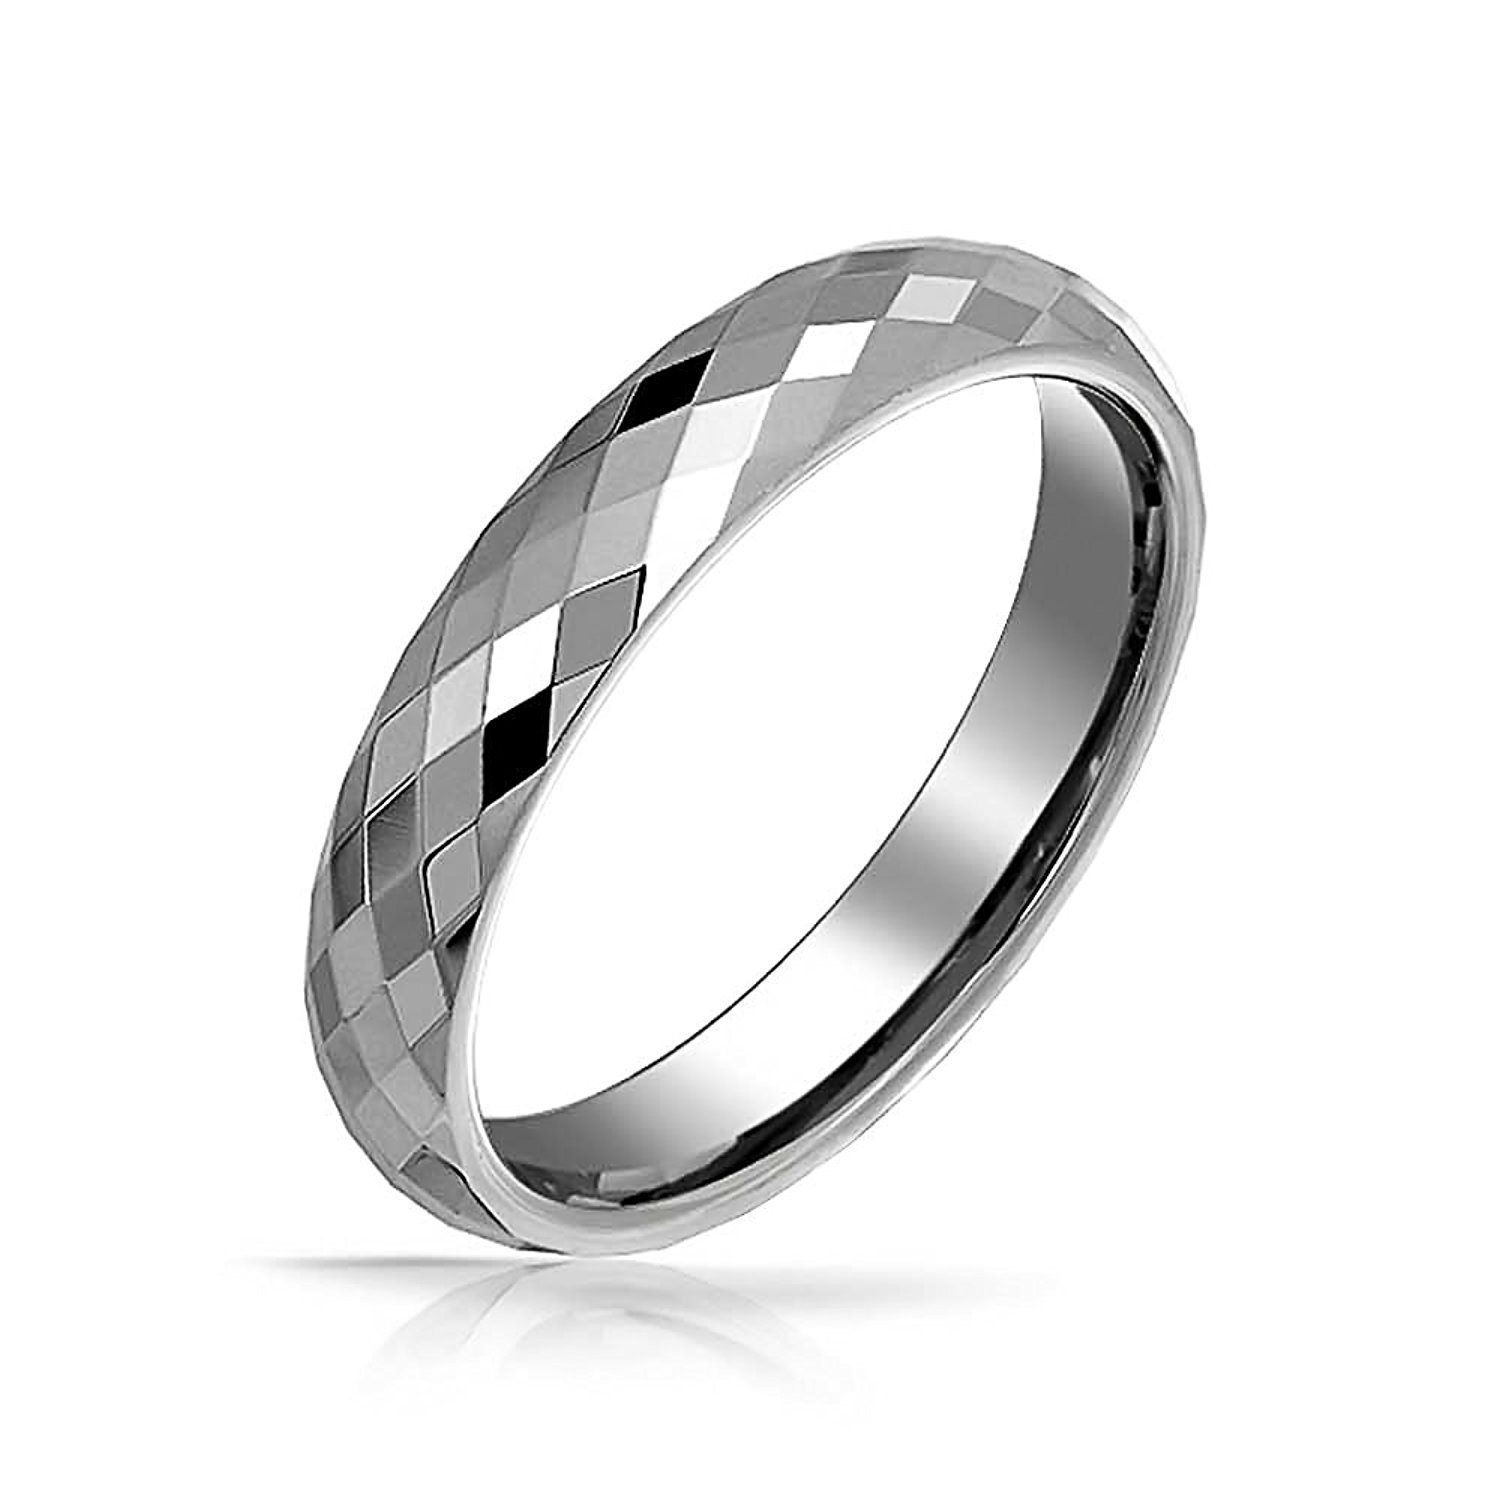 Primary image for 4mm Tungsten Ring Multi Faceted Wedding Band; 5-15 & Half